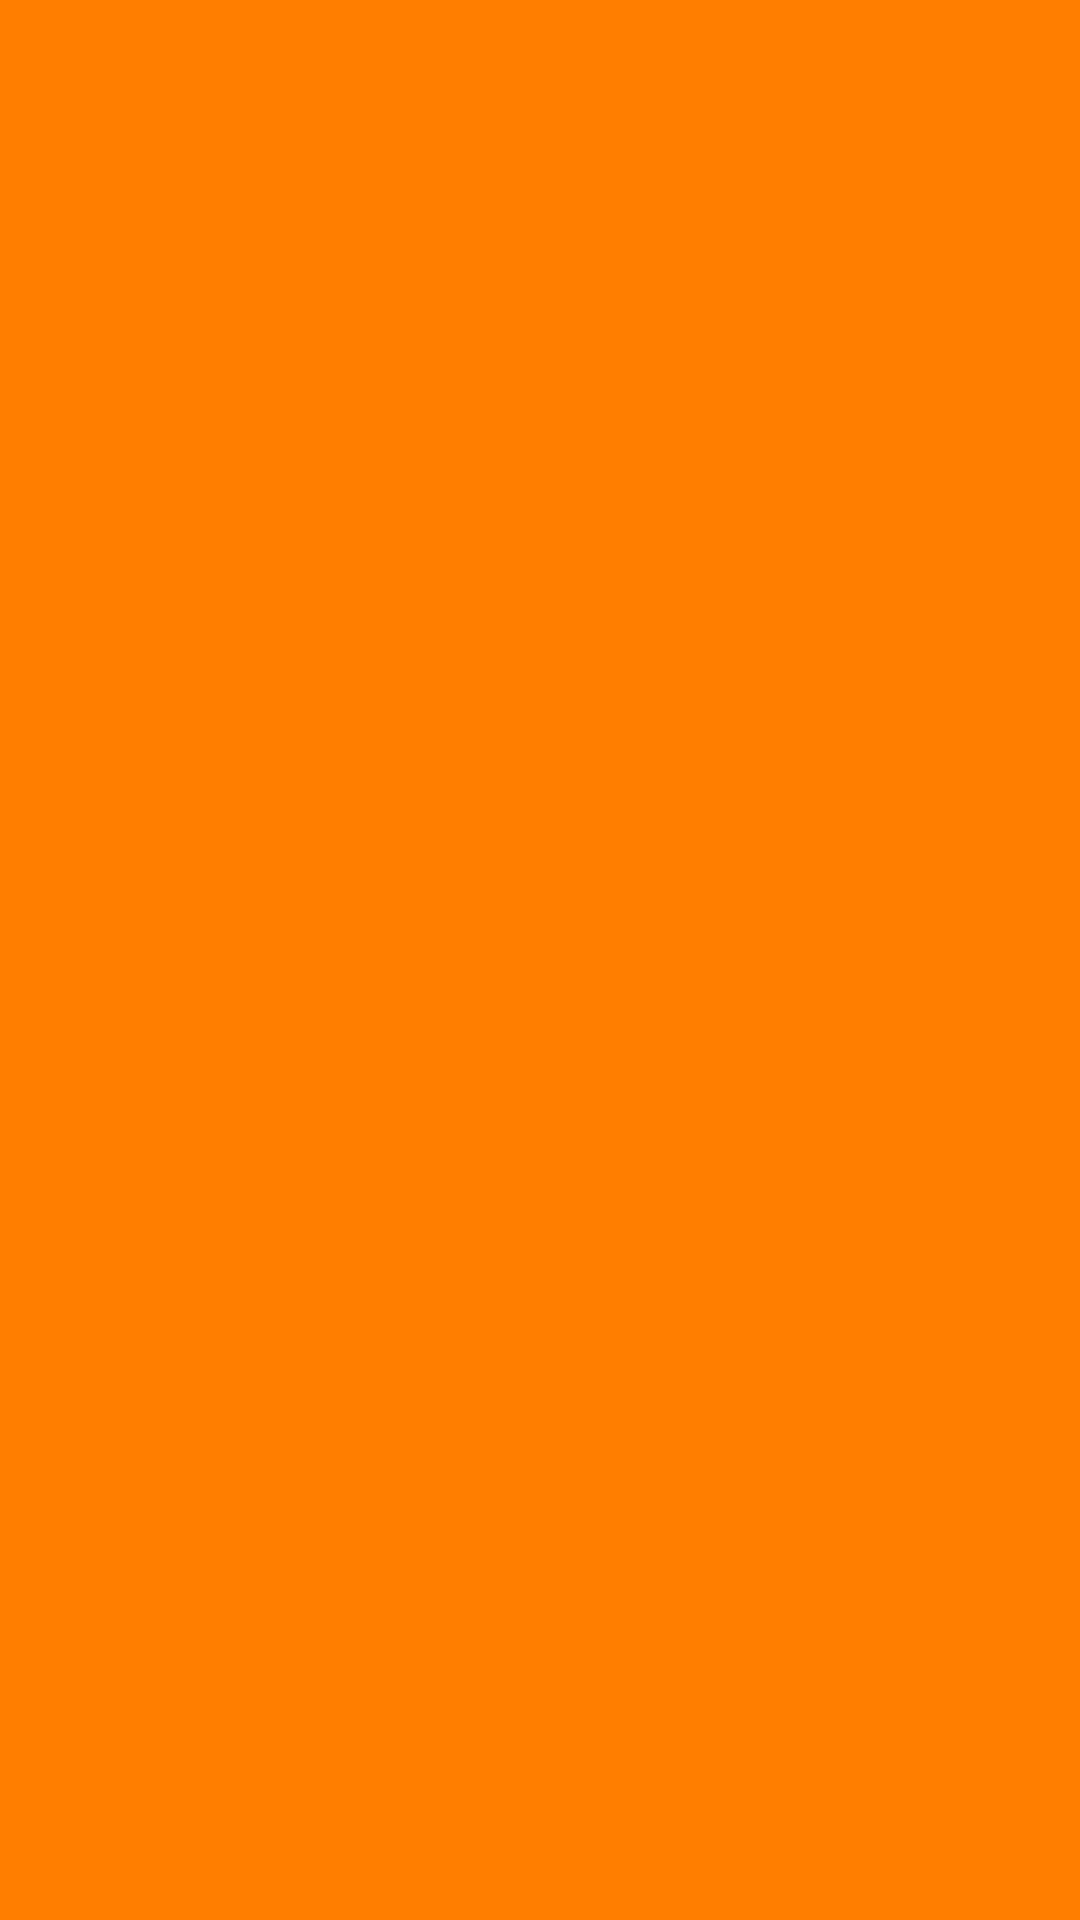 1080x1920 Amber Orange Solid Color Background